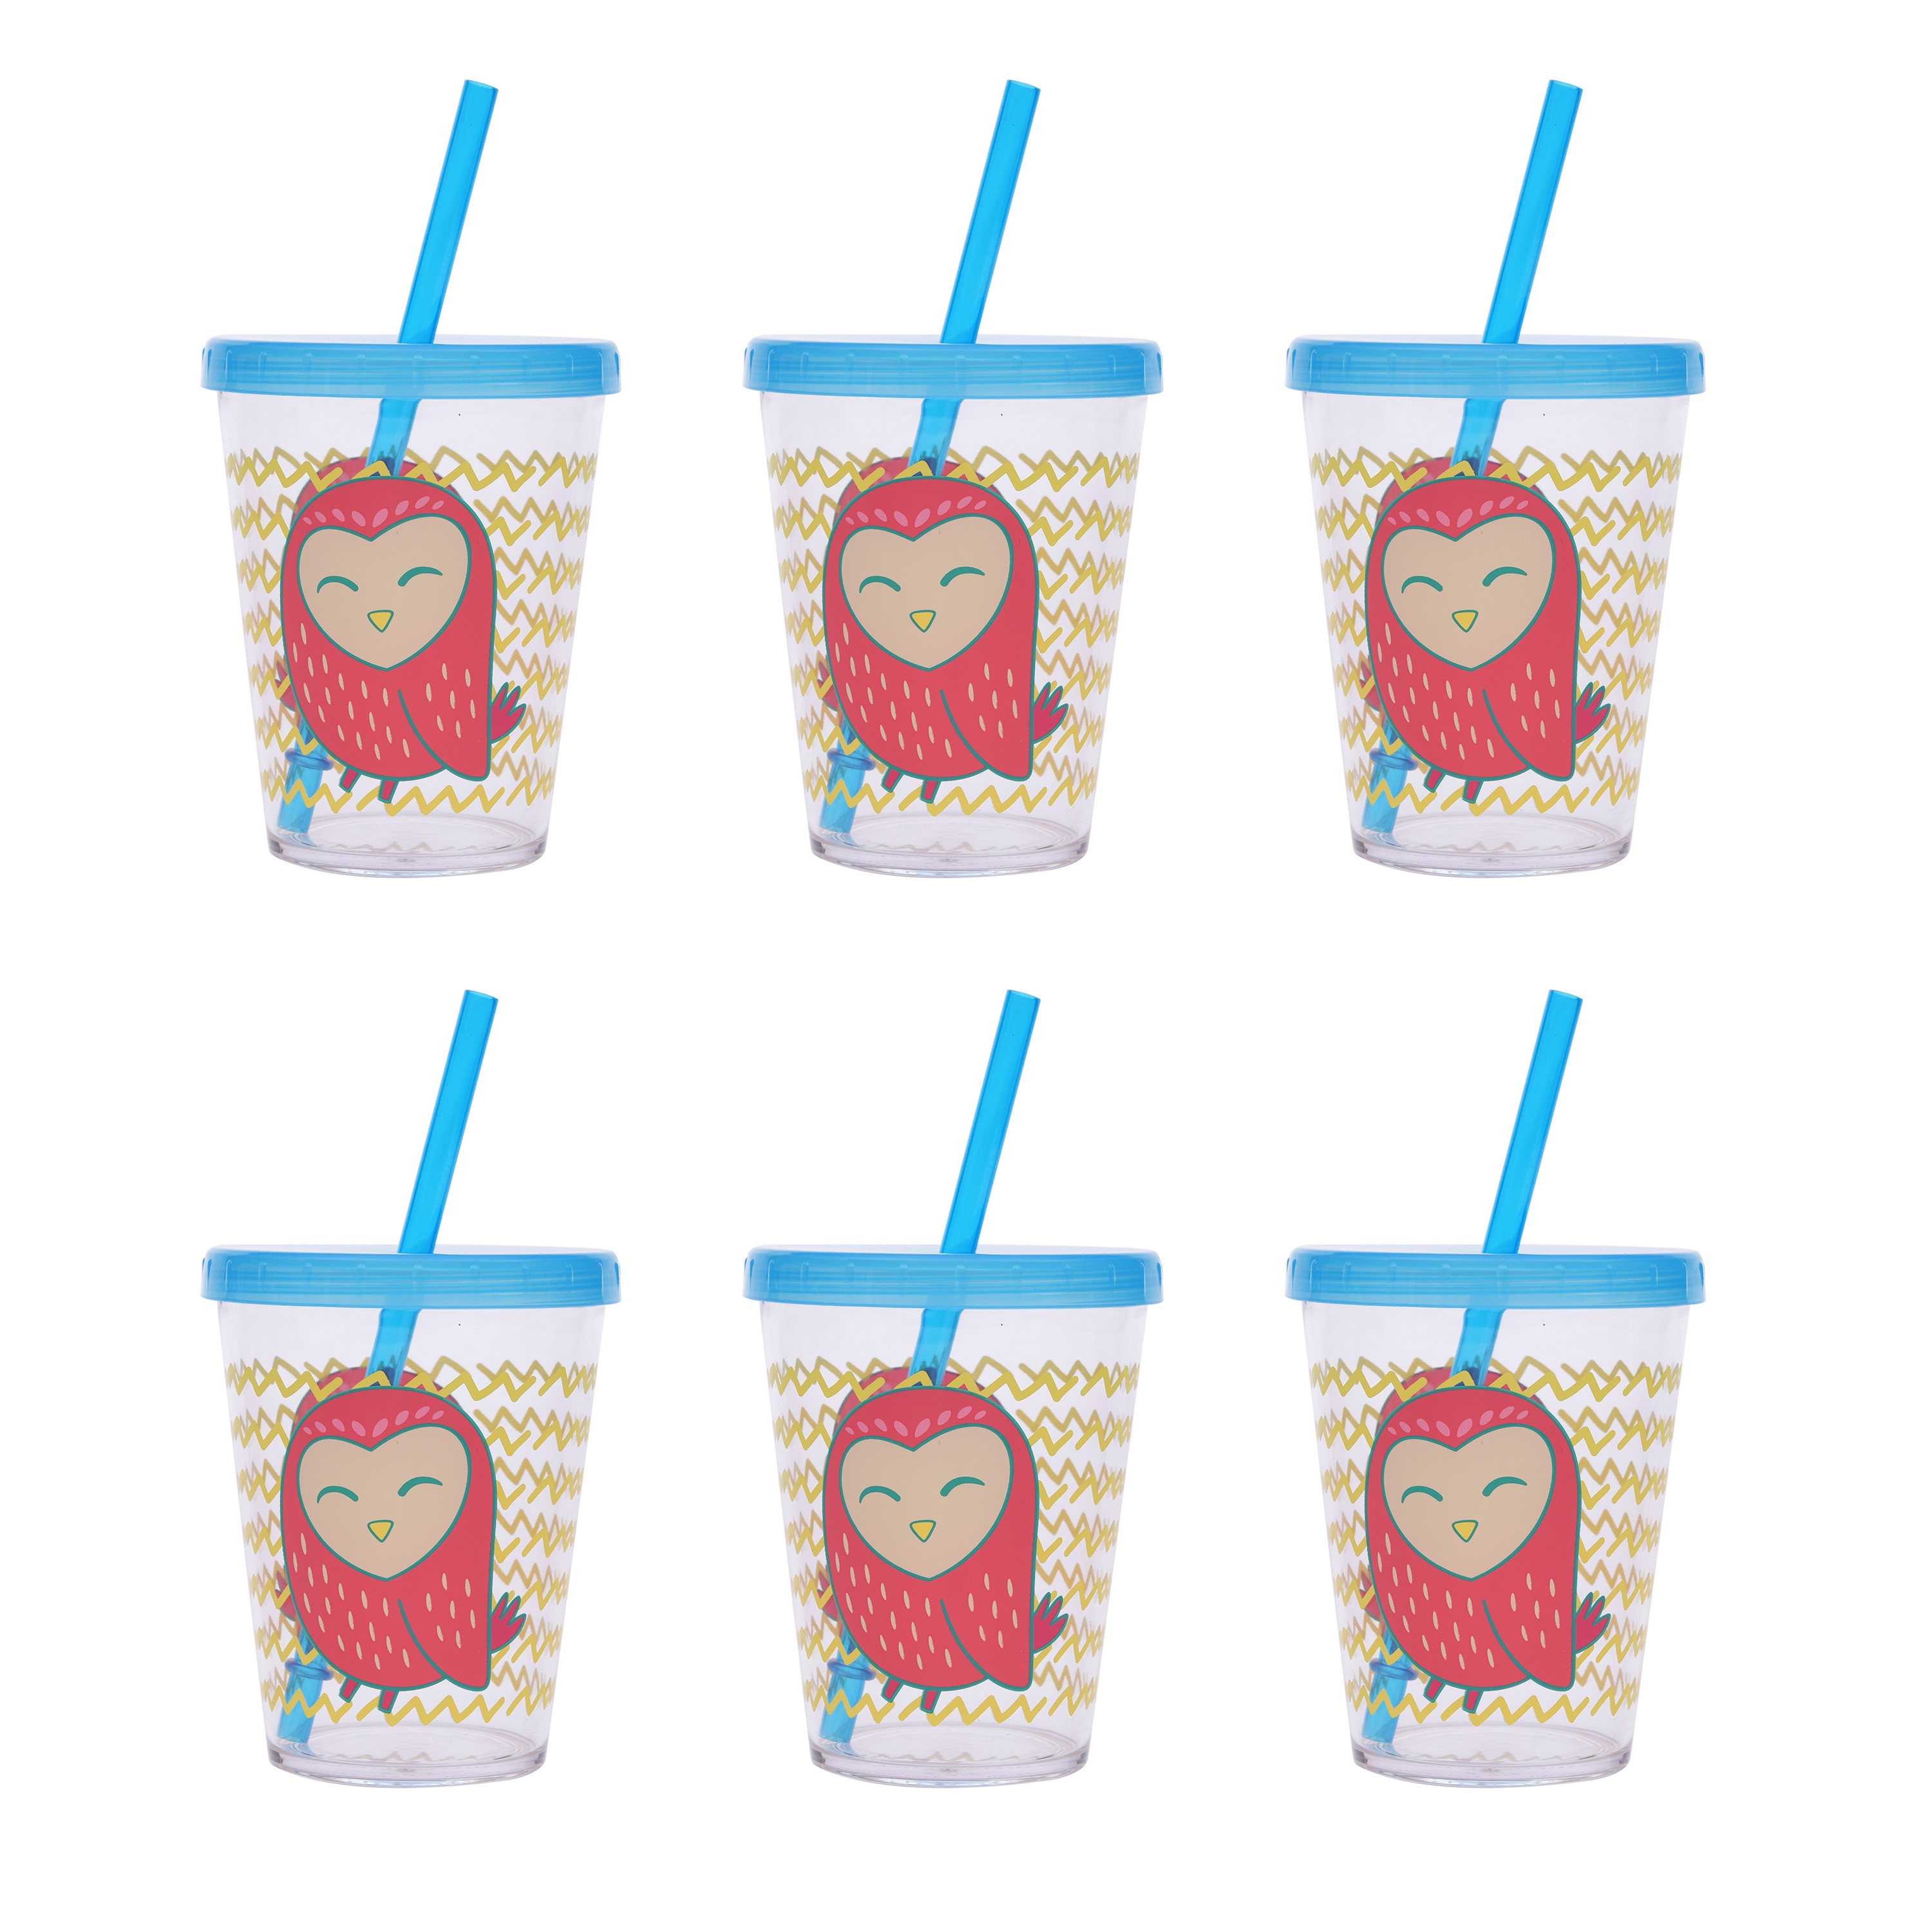 Mainstays Melamine Girl Owl 6-Pack Tumblers Set